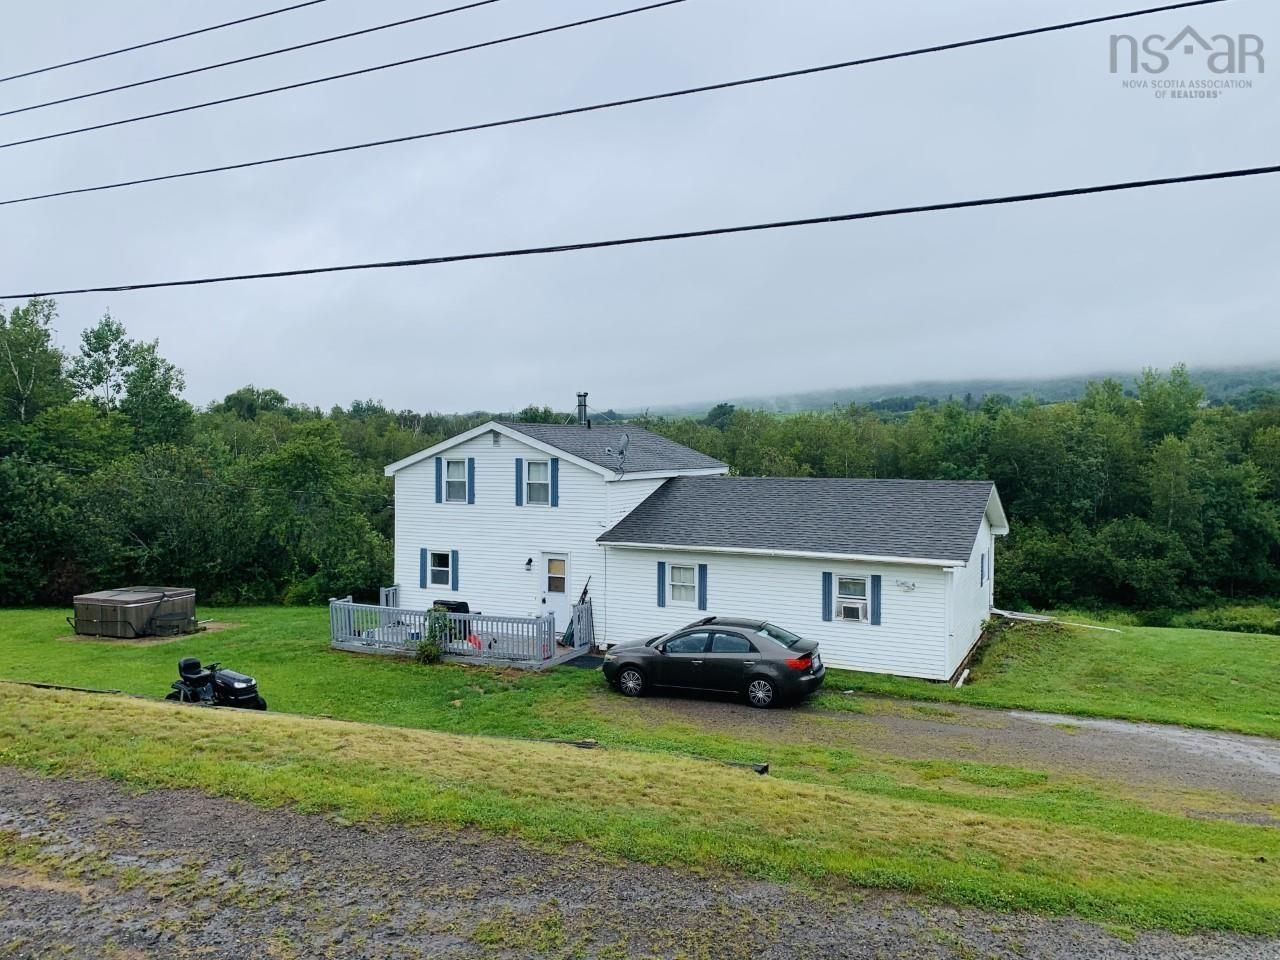 Main Photo: 235 Black Hole Road in Canning: 404-Kings County Residential for sale (Annapolis Valley)  : MLS®# 202120311